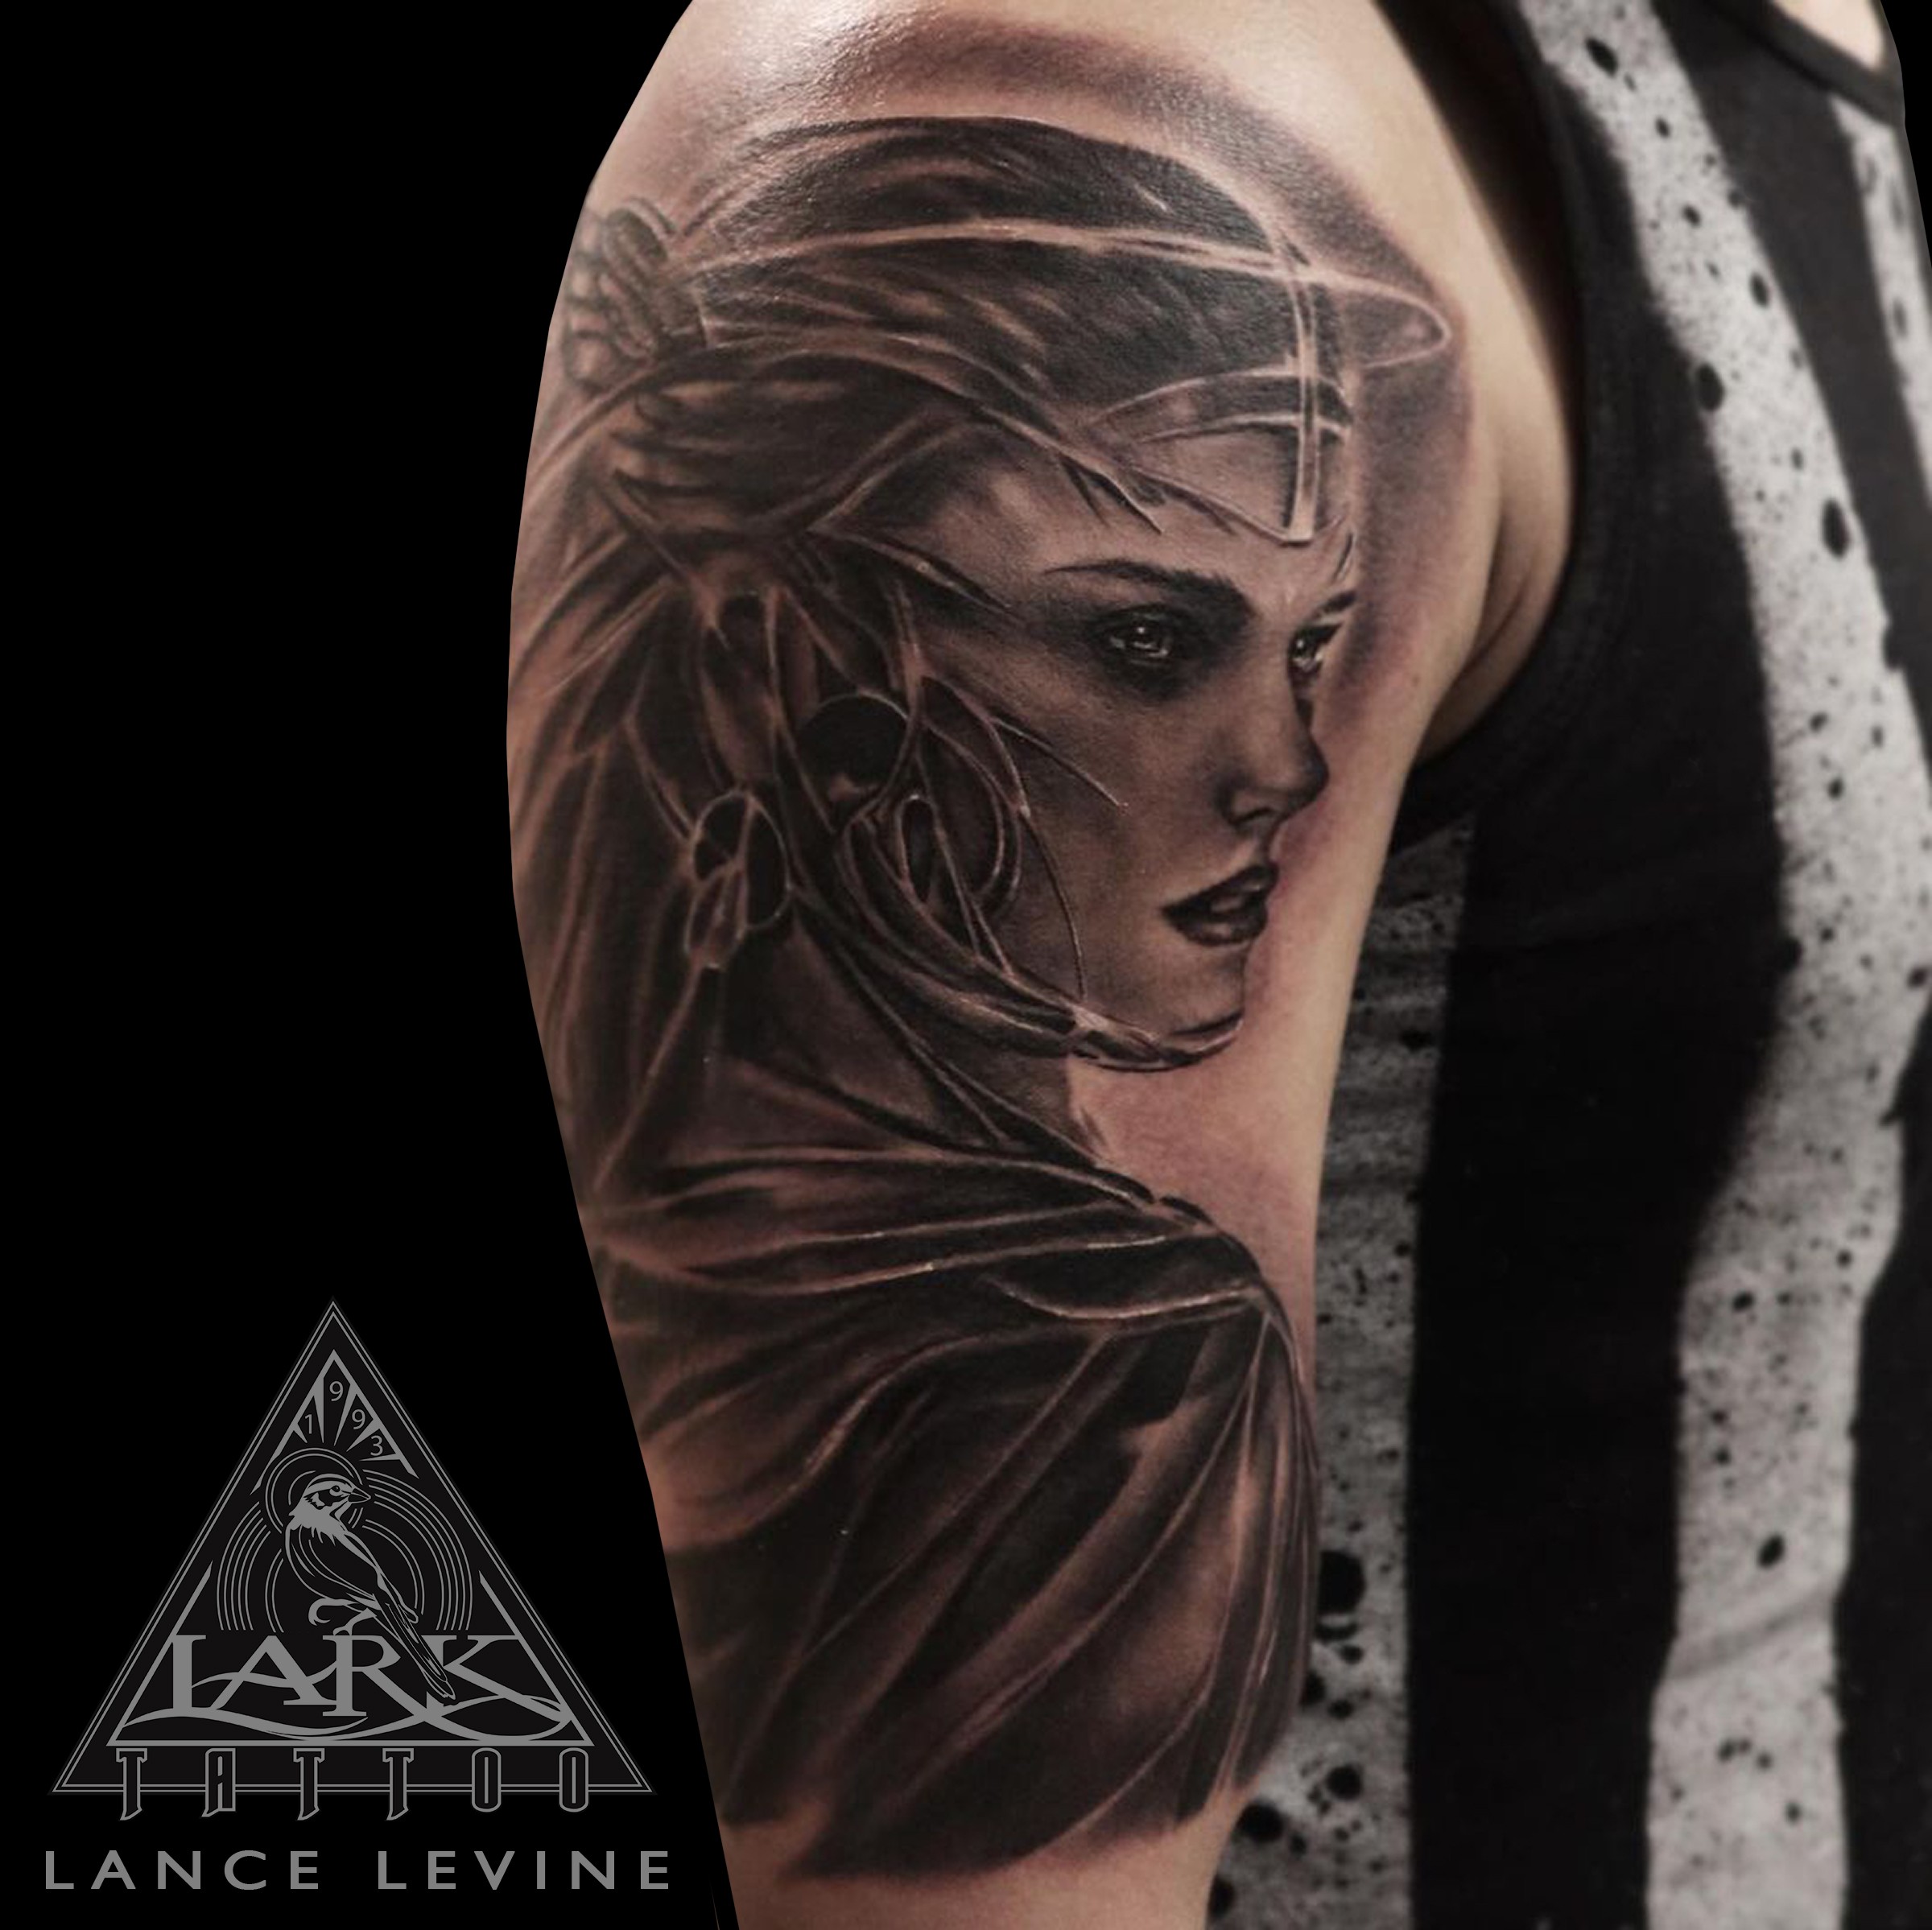 #LarkTattoo #Tattoo #Tattoos #LanceLevine #LanceLevineLarkTattoo #Valkyrie #ValkyrieTattoo #Viking #VikingTattoo #Norse #NorseTattoo #Mythology #MythologyTattoo #Fantasy #FantasyTattoo #FantasyArt #SolidInk #SolidInkTattoo #BishopWand #BishopWandTattoo #BNG #BNGTattoo #BNGInk #BNGInkTattoo #BlackAndGray #BlackAndGrayTattoo #BlackAndGrey #BlackAndGreyTattoo #BlackAndGrayRealism #BlackAndGrayRealismTattoo #BlackAndGreyRealism #BlackAndGreyRealismTattoo #Realism #RealismTattoo #Realistic #RealisticTattoo #TattooArtist #Tattoist #Tattooer #LongIslandTattooArtist #LongIslandTattooer #LongIslandTattoo #TattooOfTheDay #Tat #Tats #Tatts #Tatted #Inked #Ink #TattooInk #AmazingInk #AmazingTattoo #BodyArt #LarkTattooWestbury #Westbury #LongIsland #NY #NewYork #USA #Art #Tattedup #InkedUp #LarkTattoos